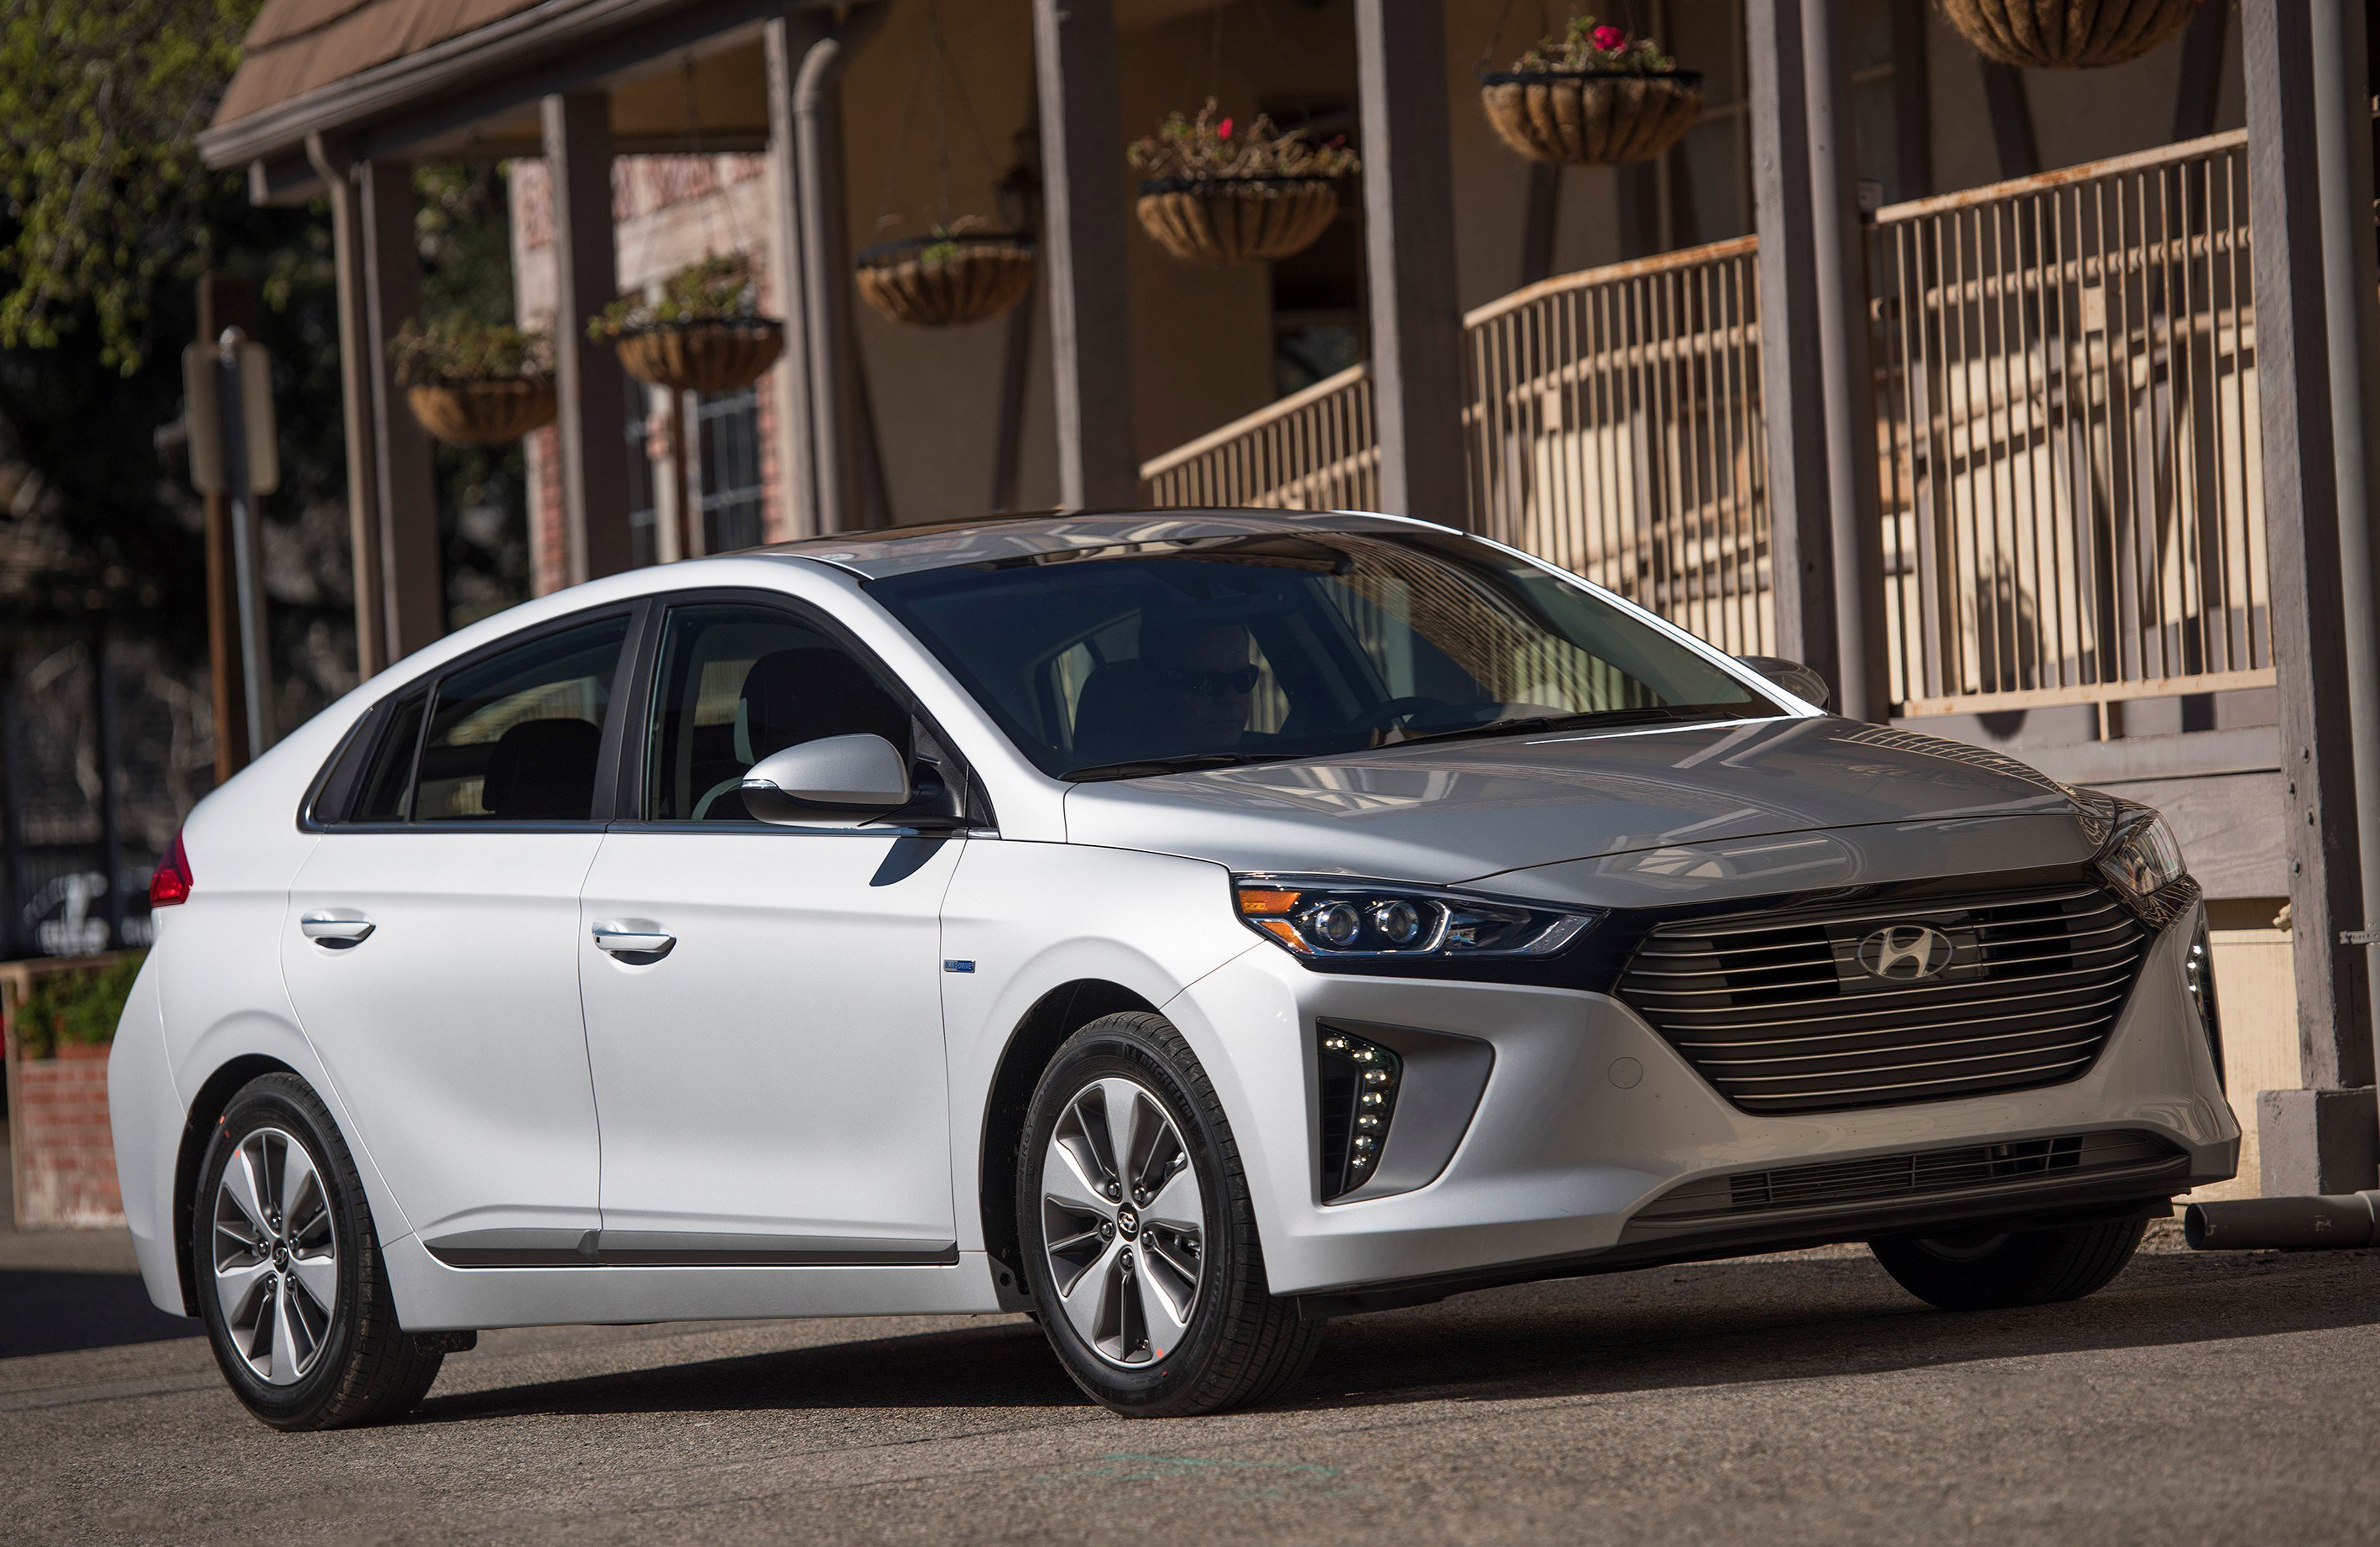 Ioniq PHEV Rounds Out Hyundai's Low-Emissions, High ...